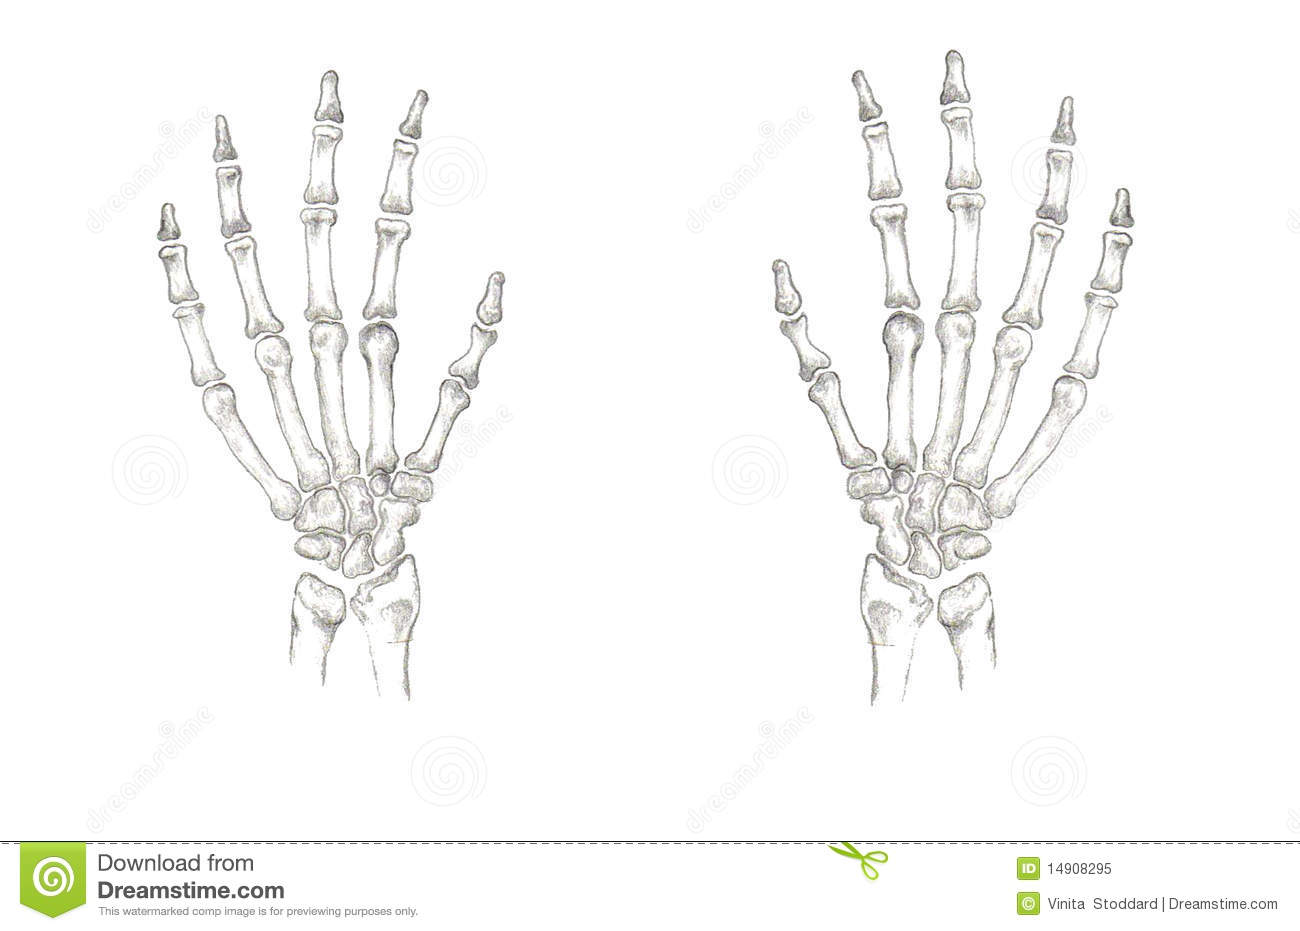 Accurate hand bones stock illustration. Illustration of